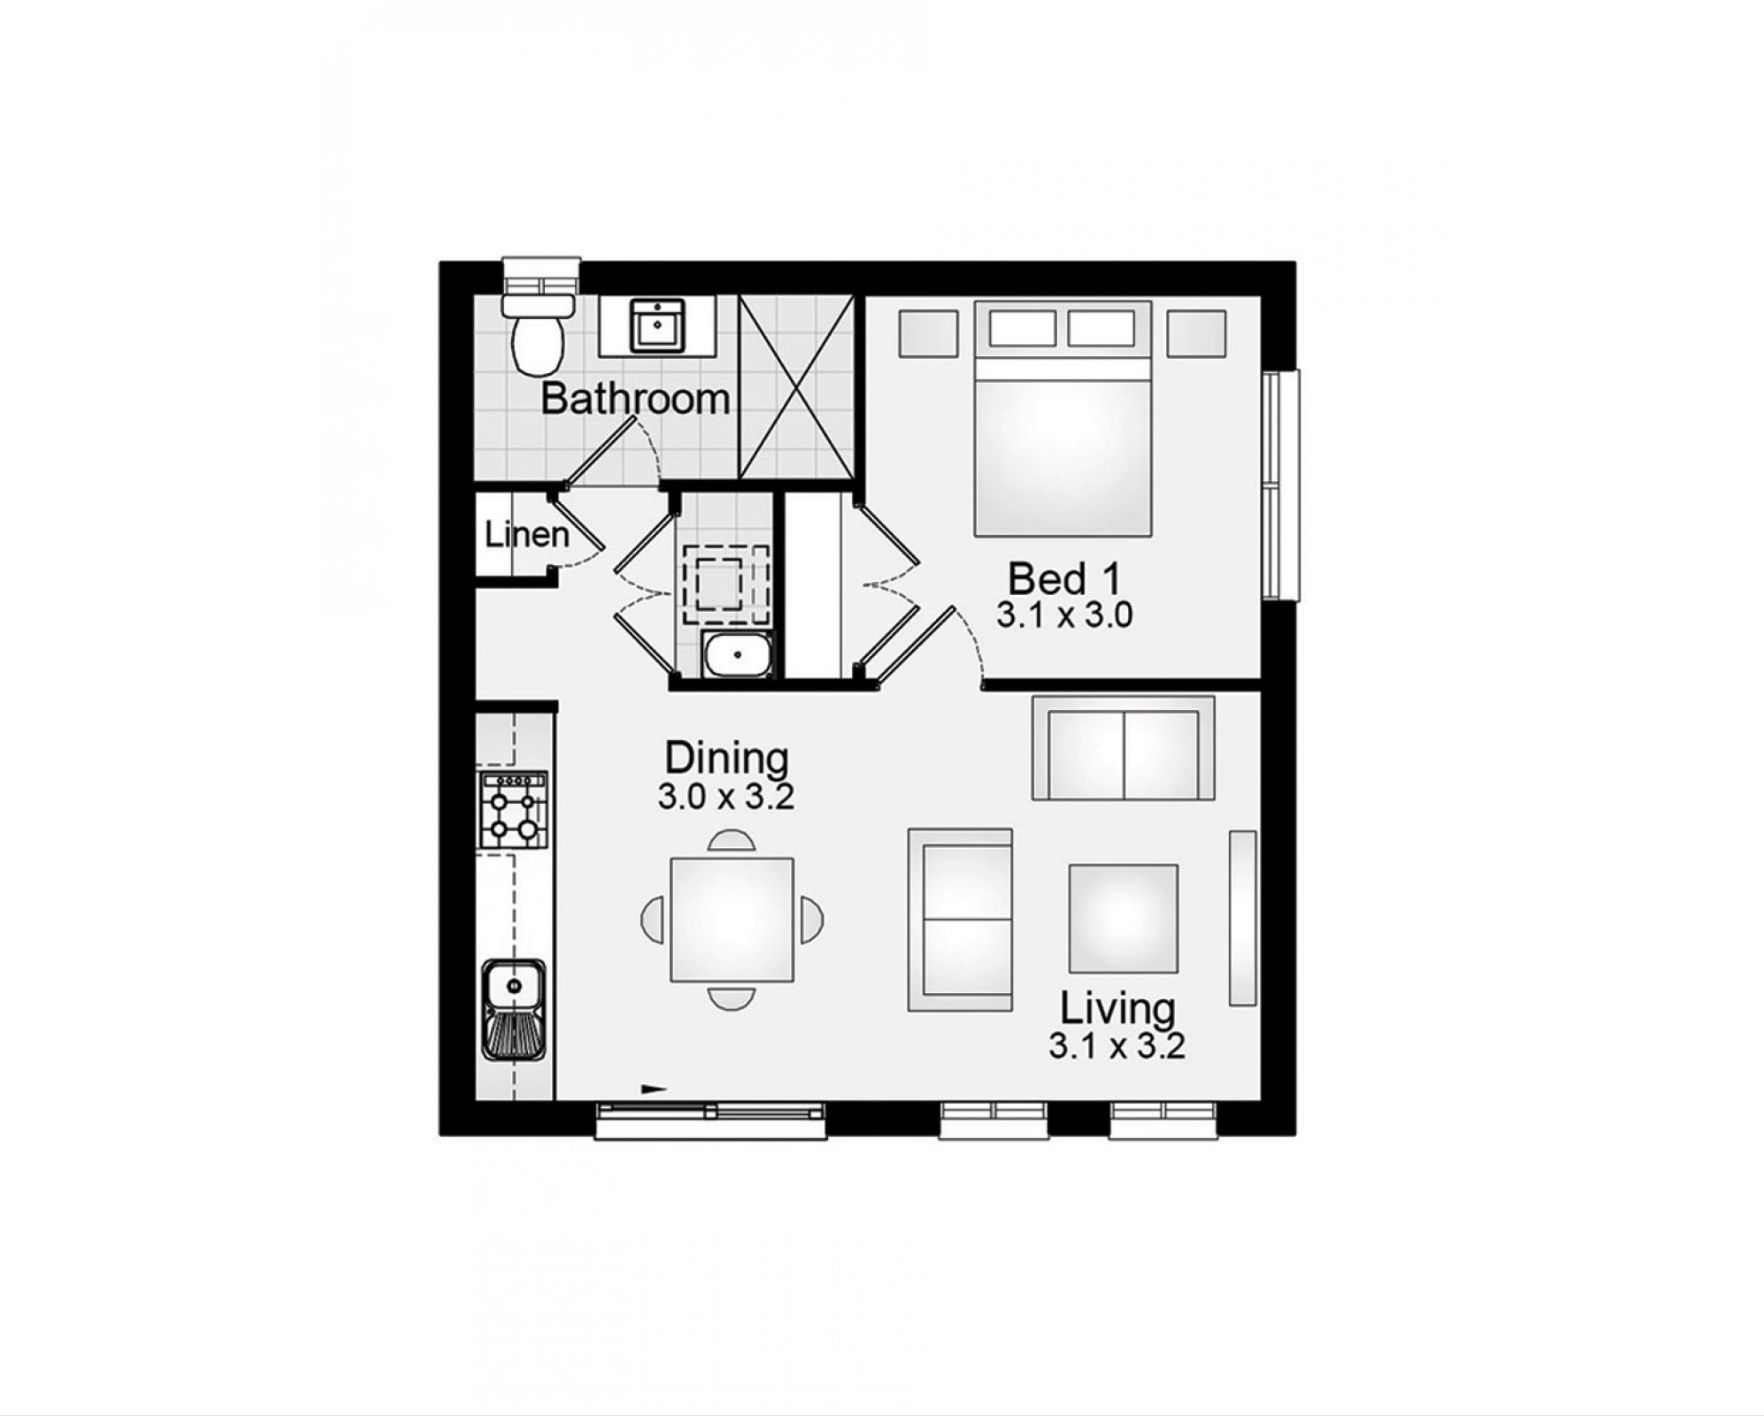 Granny flat 45m2 1 bedroom clarendon homes floor plans granny flats pinterest granny for 1 bedroom granny flat floor plans